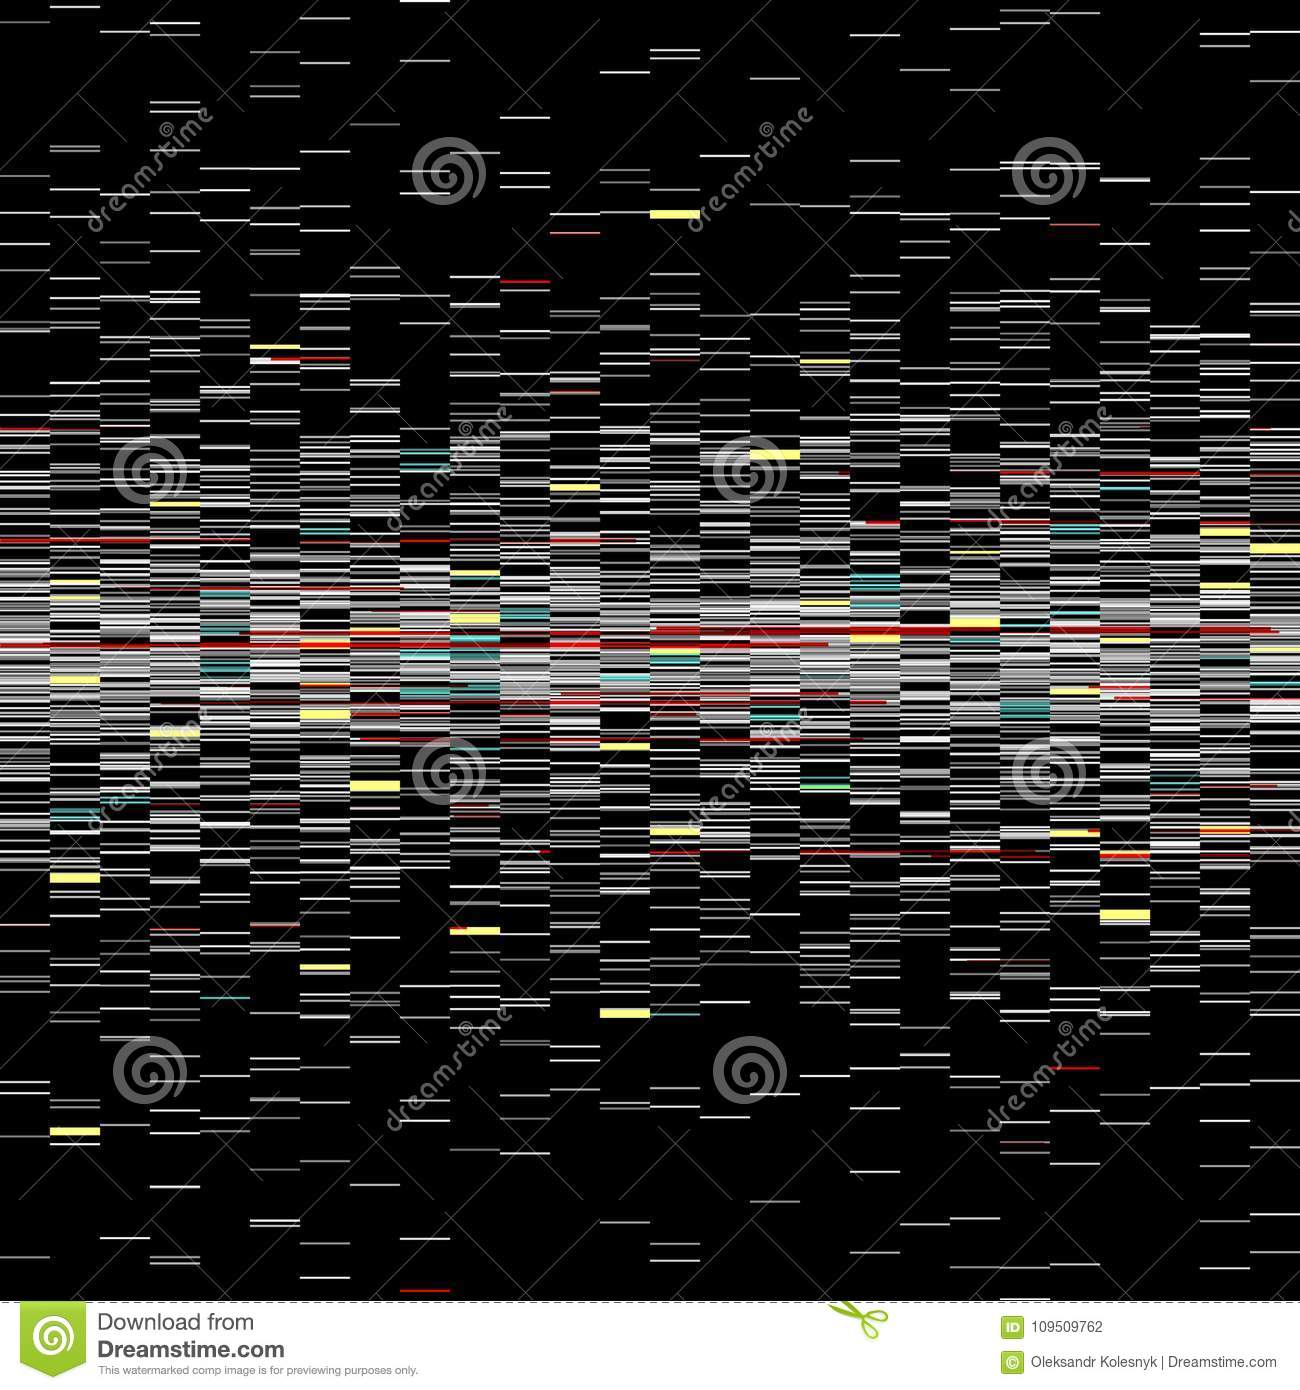 Glitch elements set. Computer screen error templates. Digital pixel noise abstract design. Video game glitch. Glitches